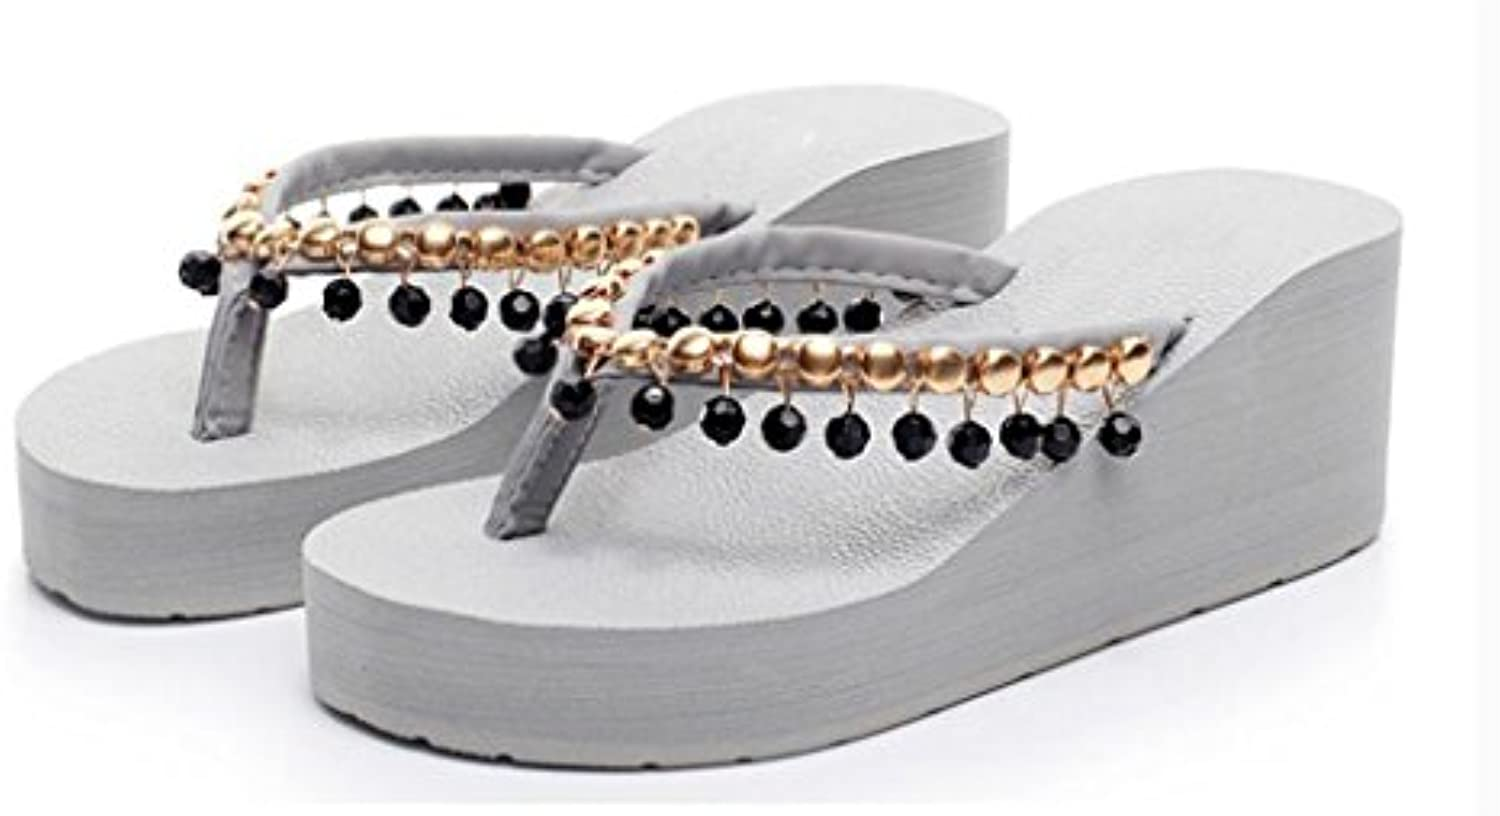 MuMa Sandalias y Chanclas Zapatos de Playa Antideslizantes Plataforma Gruesa Cool Drag Shoes Mujer Verano High...